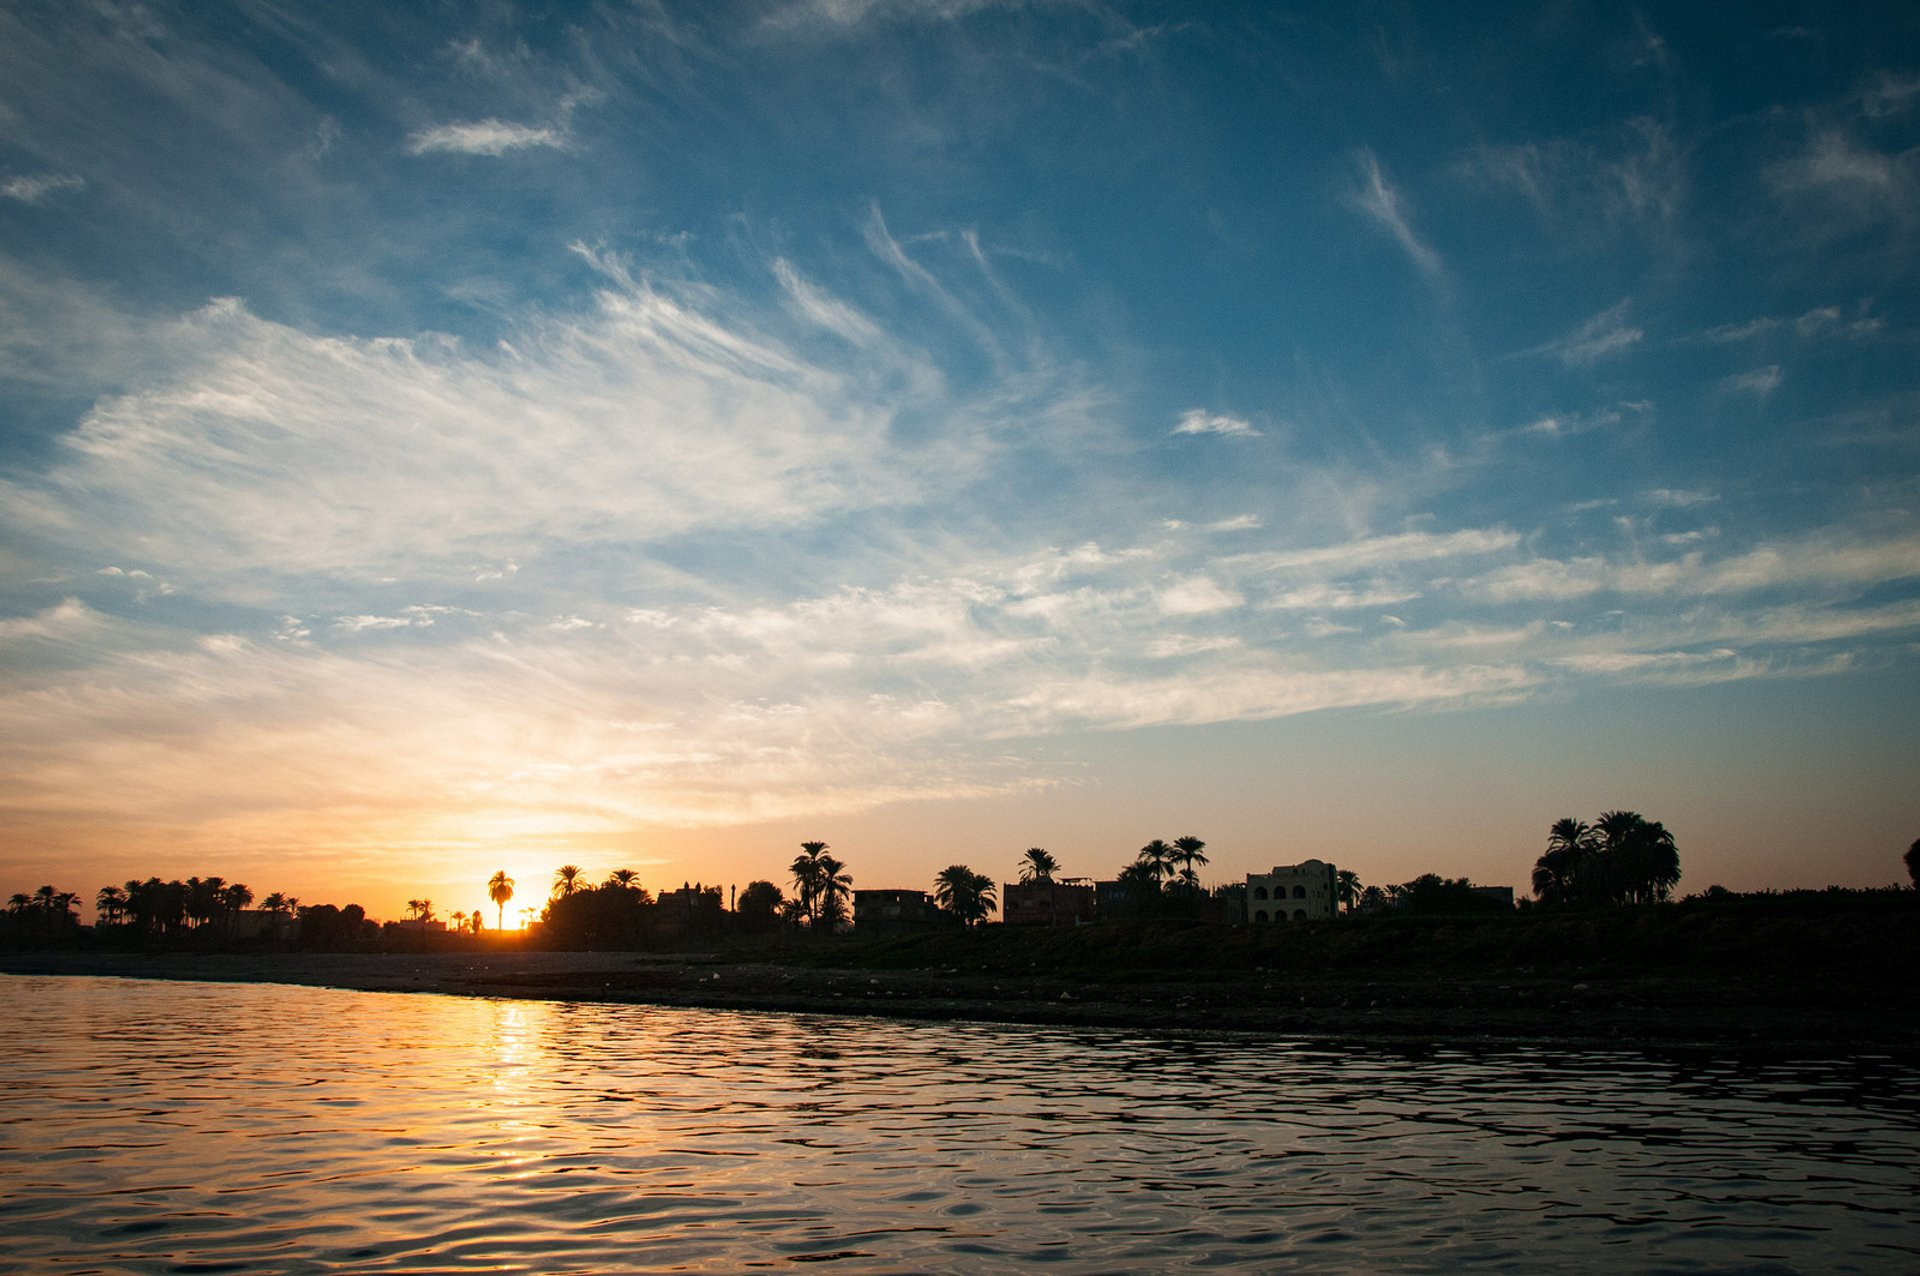 Nile River Cruise in Luxor